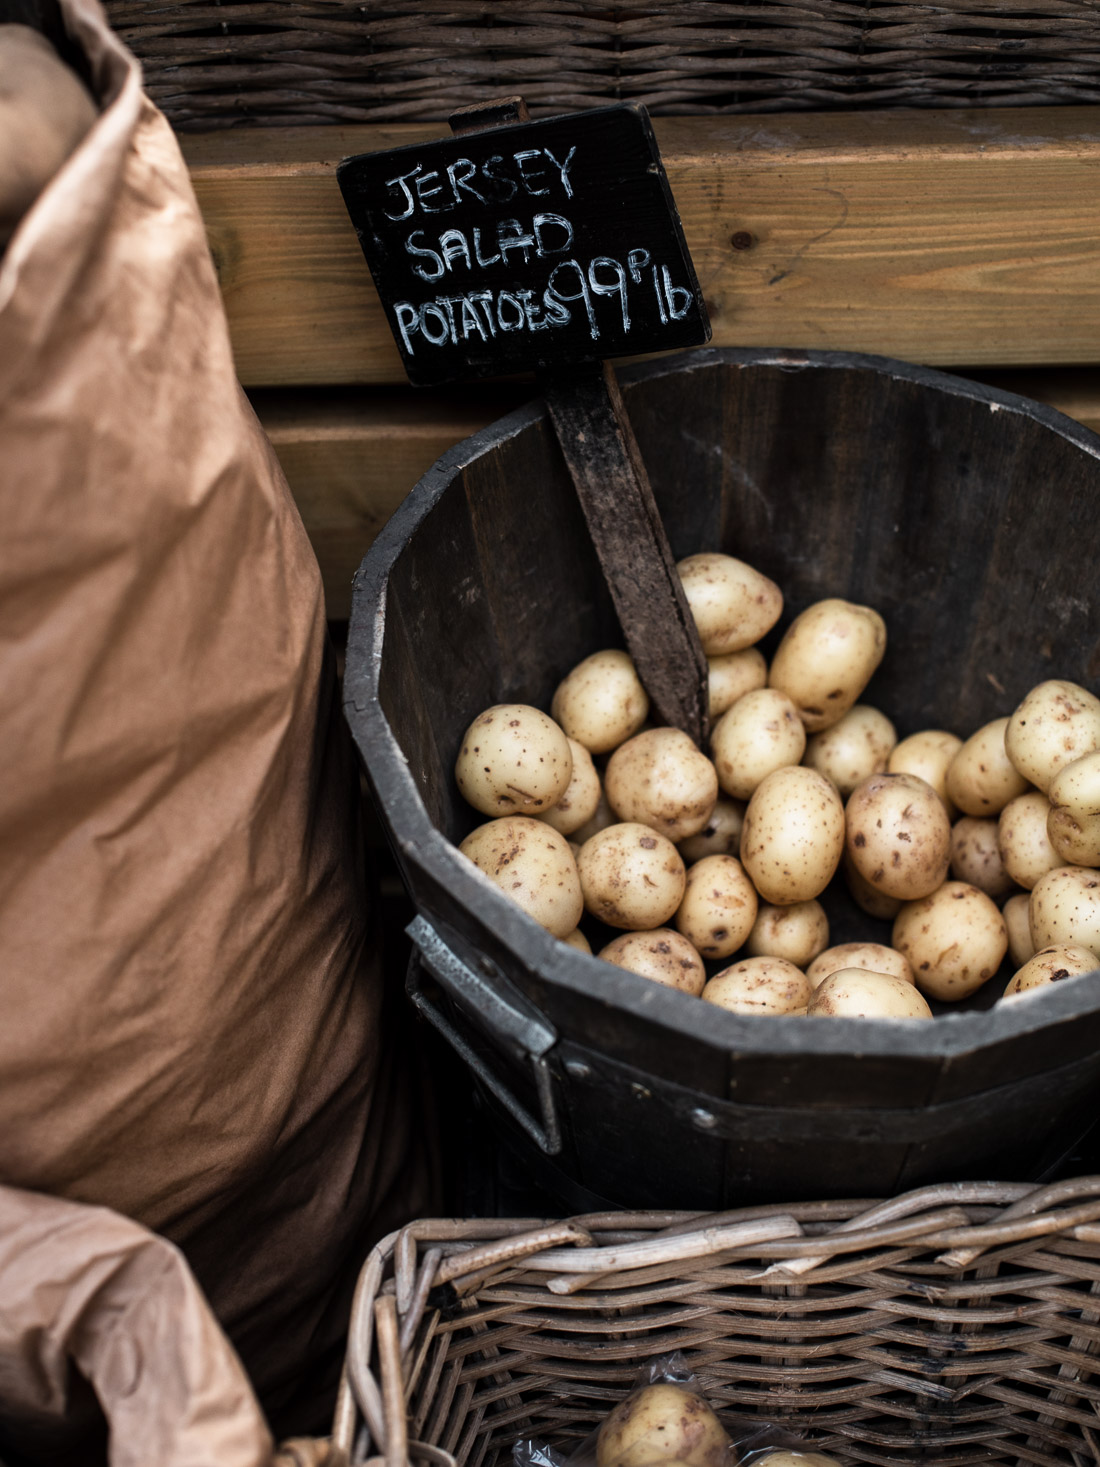 48 Hours in Jersey, Jersey potatoes